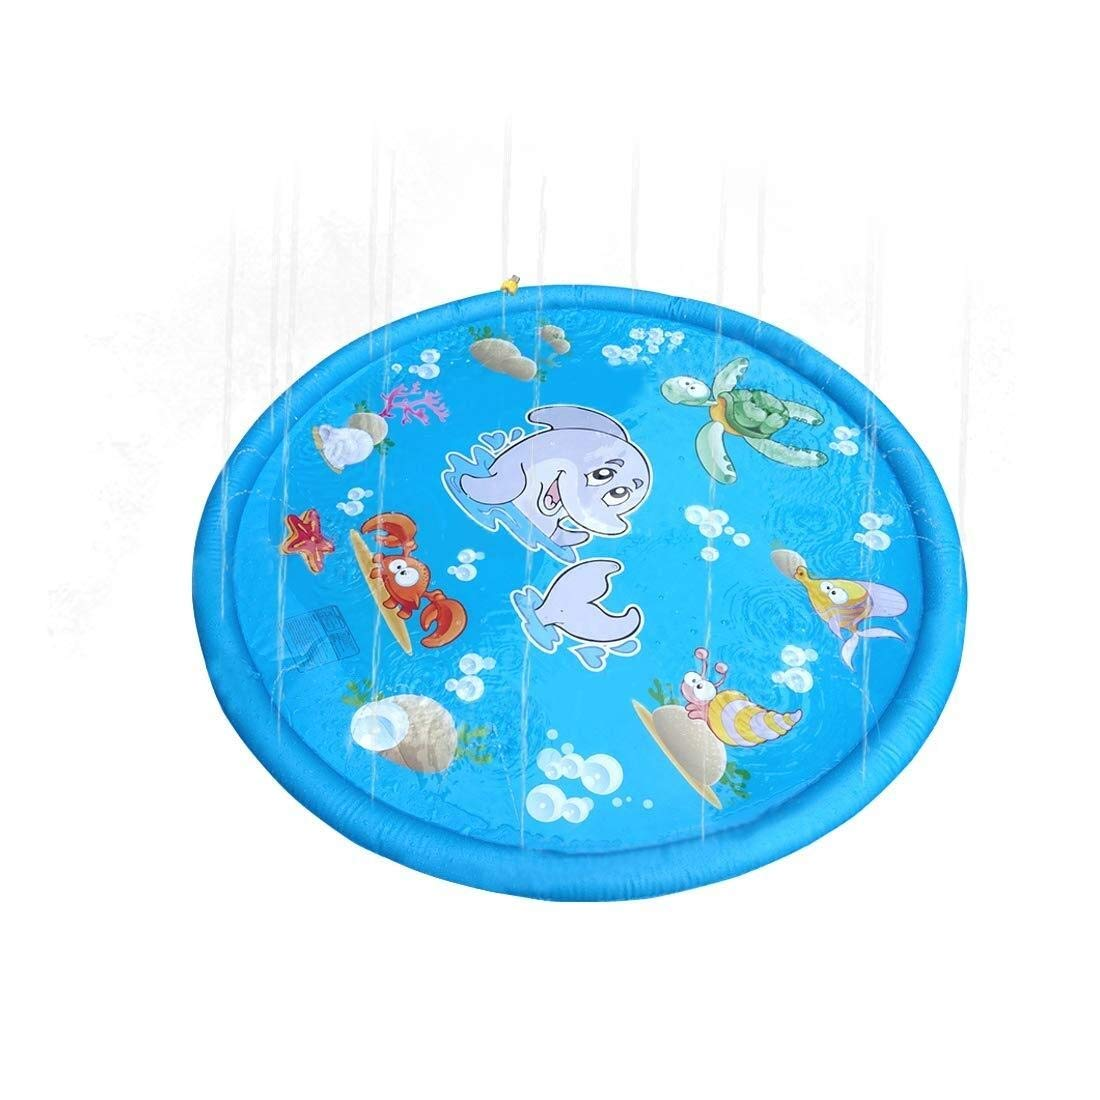 LUCY STORE Beach Swimming Pool Inflatable, Children's Inflatable Water Spray pad, Outdoor Lawn Sprinkler pad Baby Toddler boy Girl Family